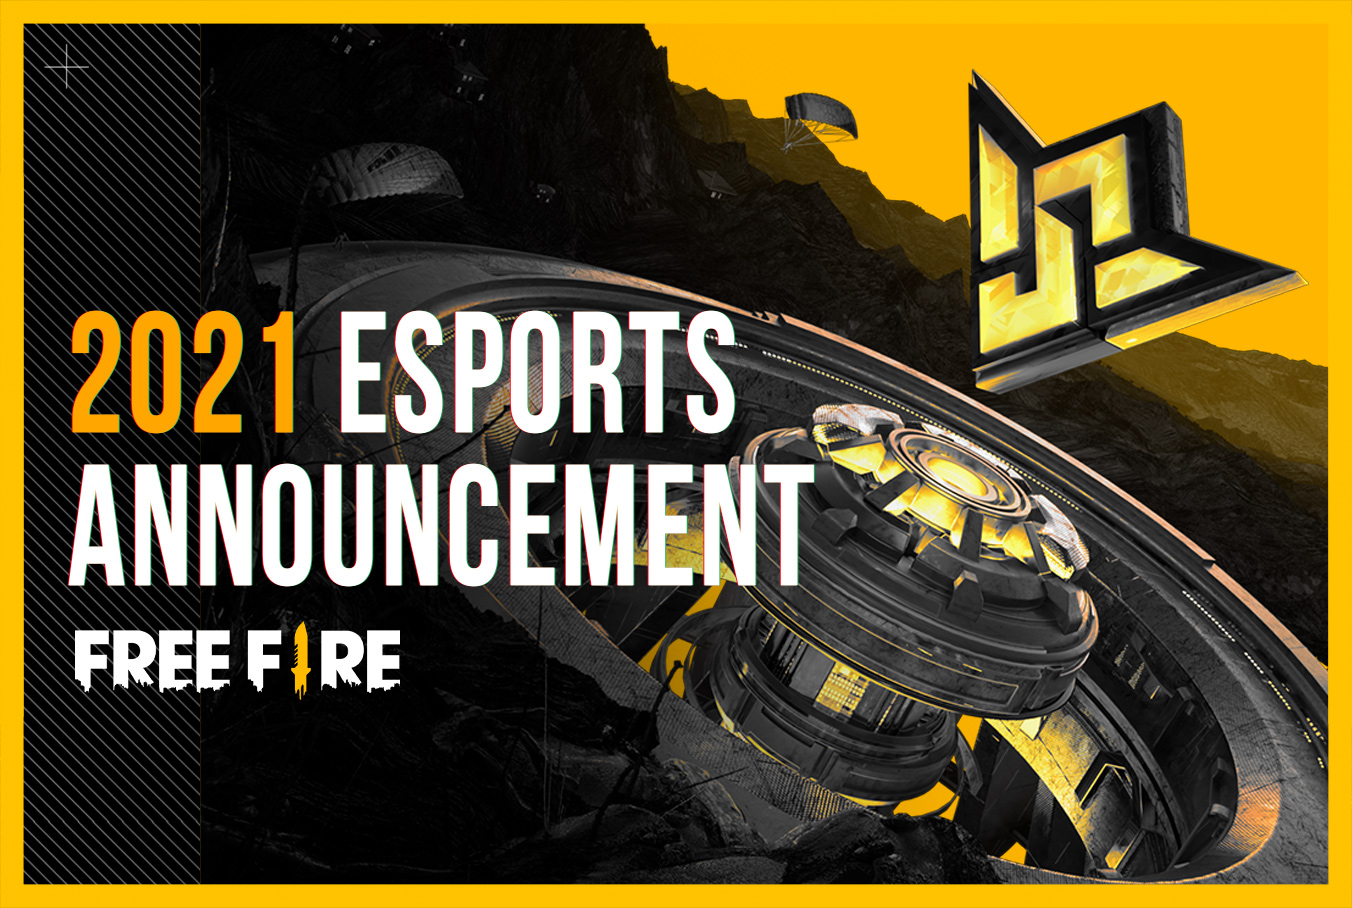 2021 Free Fire Esports Roadmap Announcement